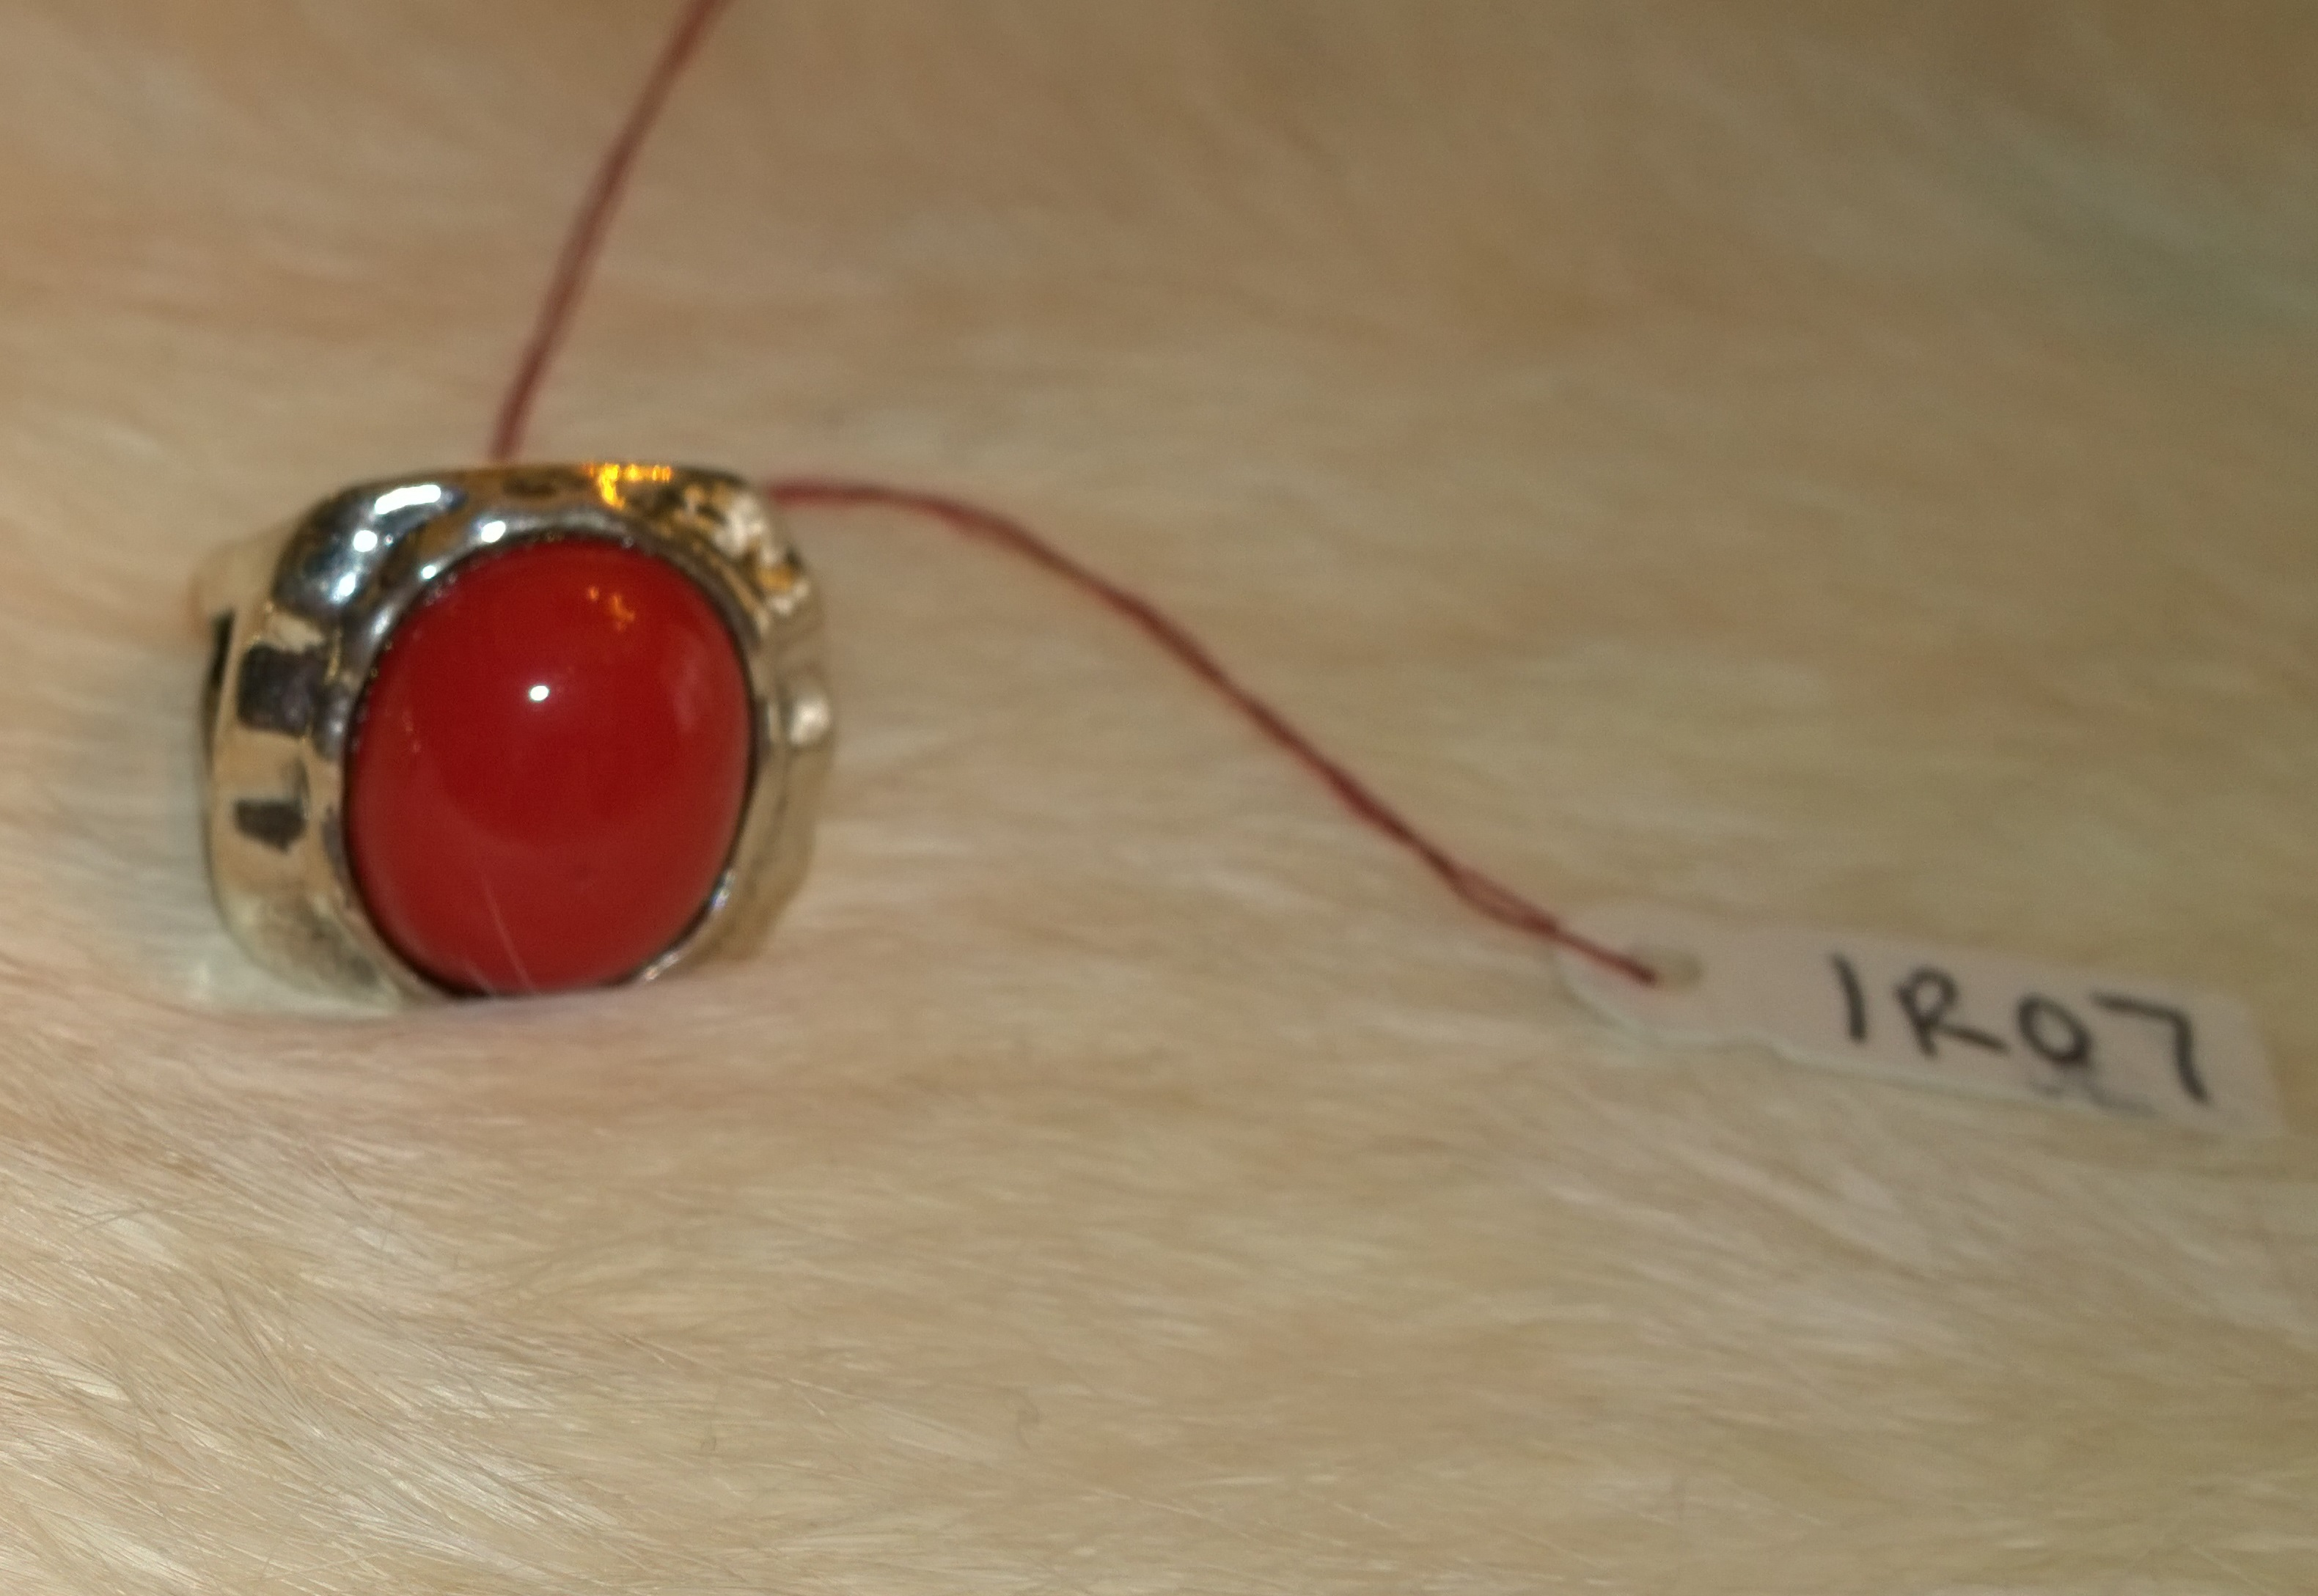 Coral Red Ring Signed by Designer 1R07 Size 7